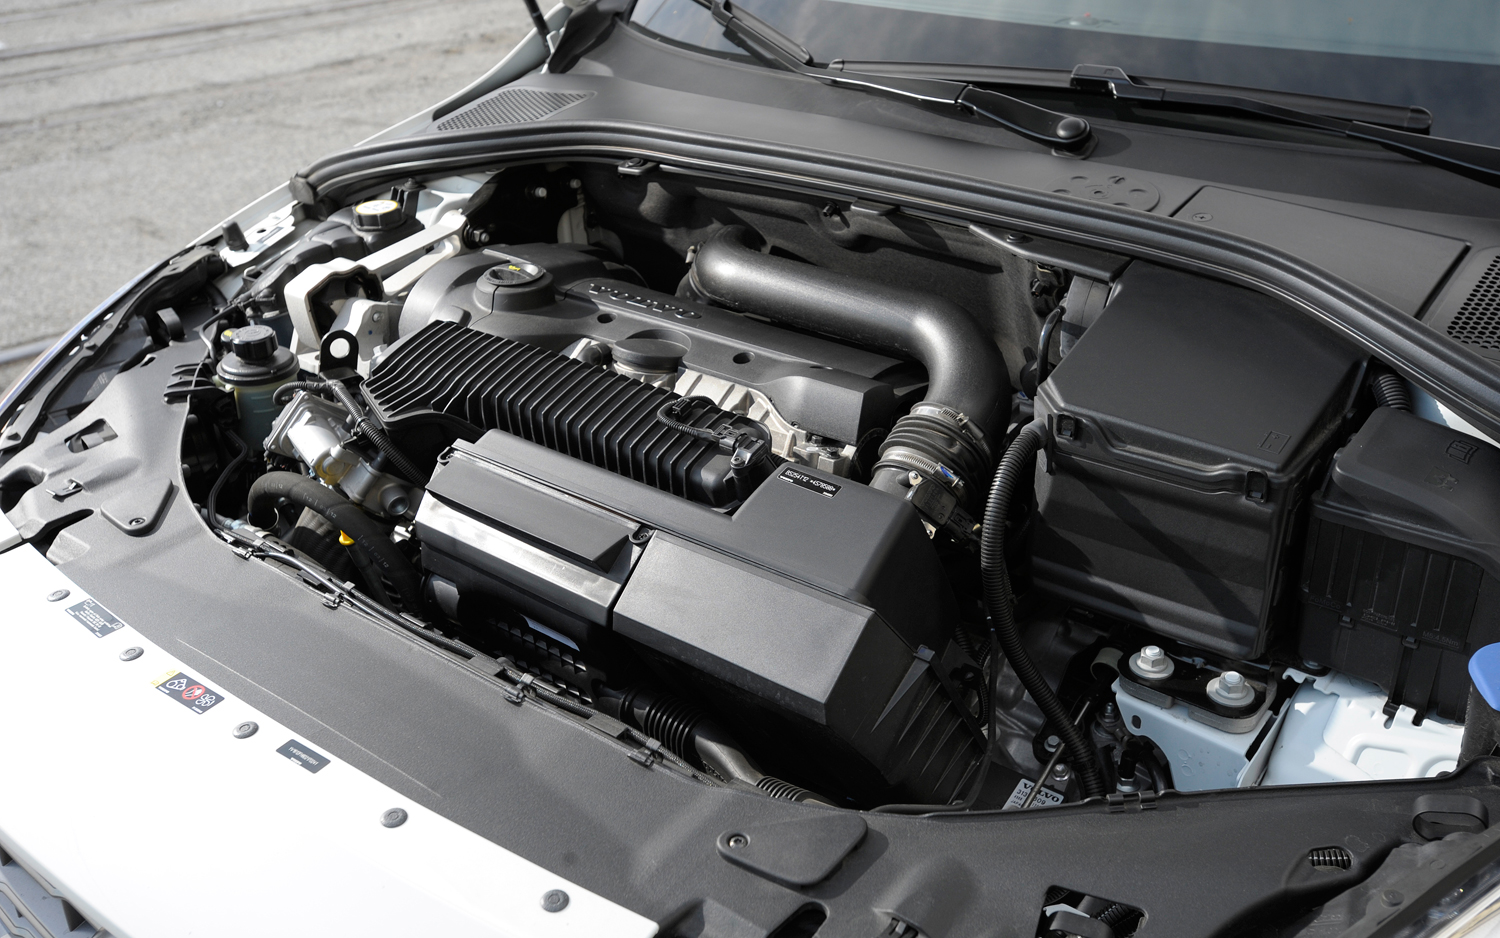 Volvo S60 engine #3